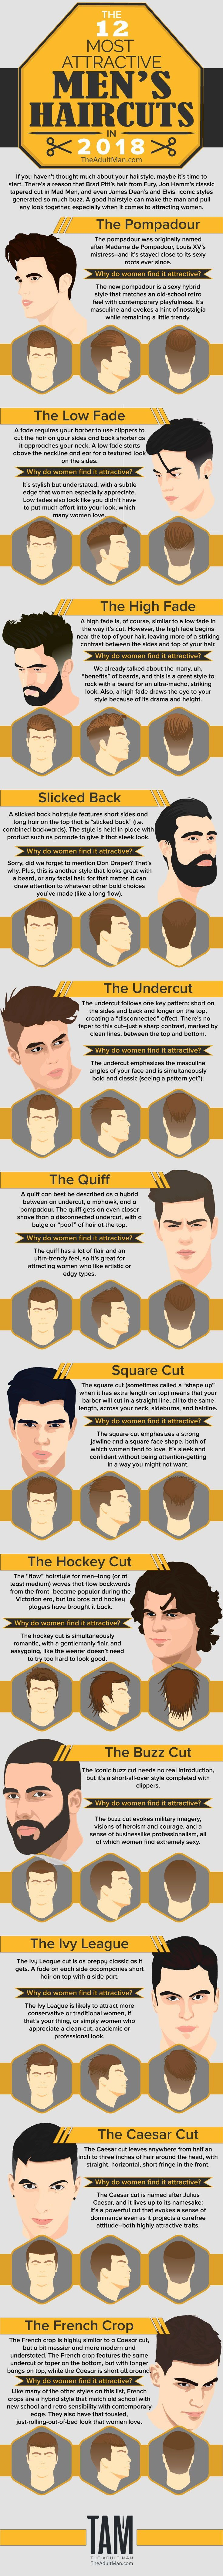 The most attractive hairstyles for guys that women love